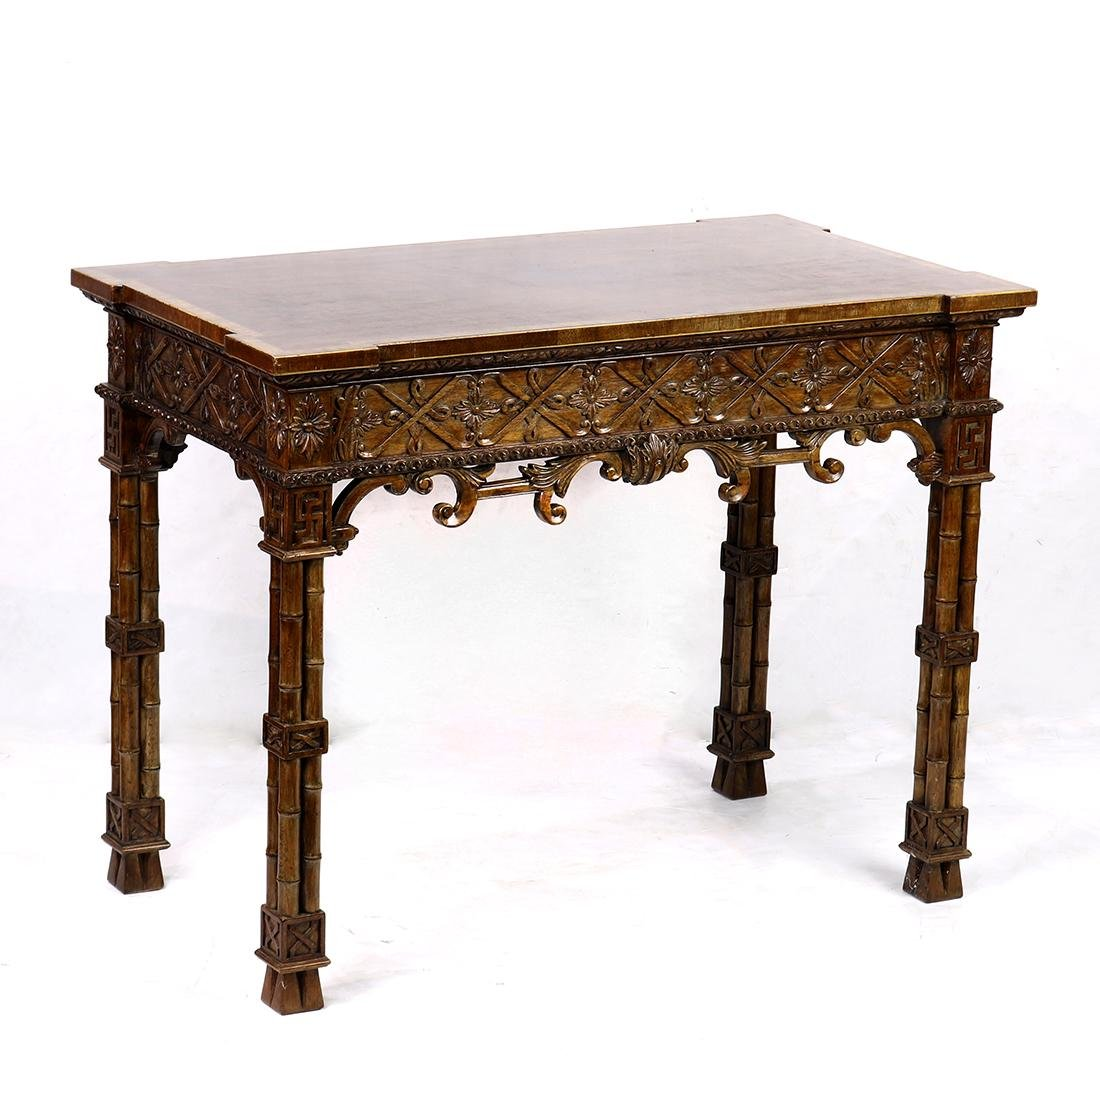 Italian Baroque style console table